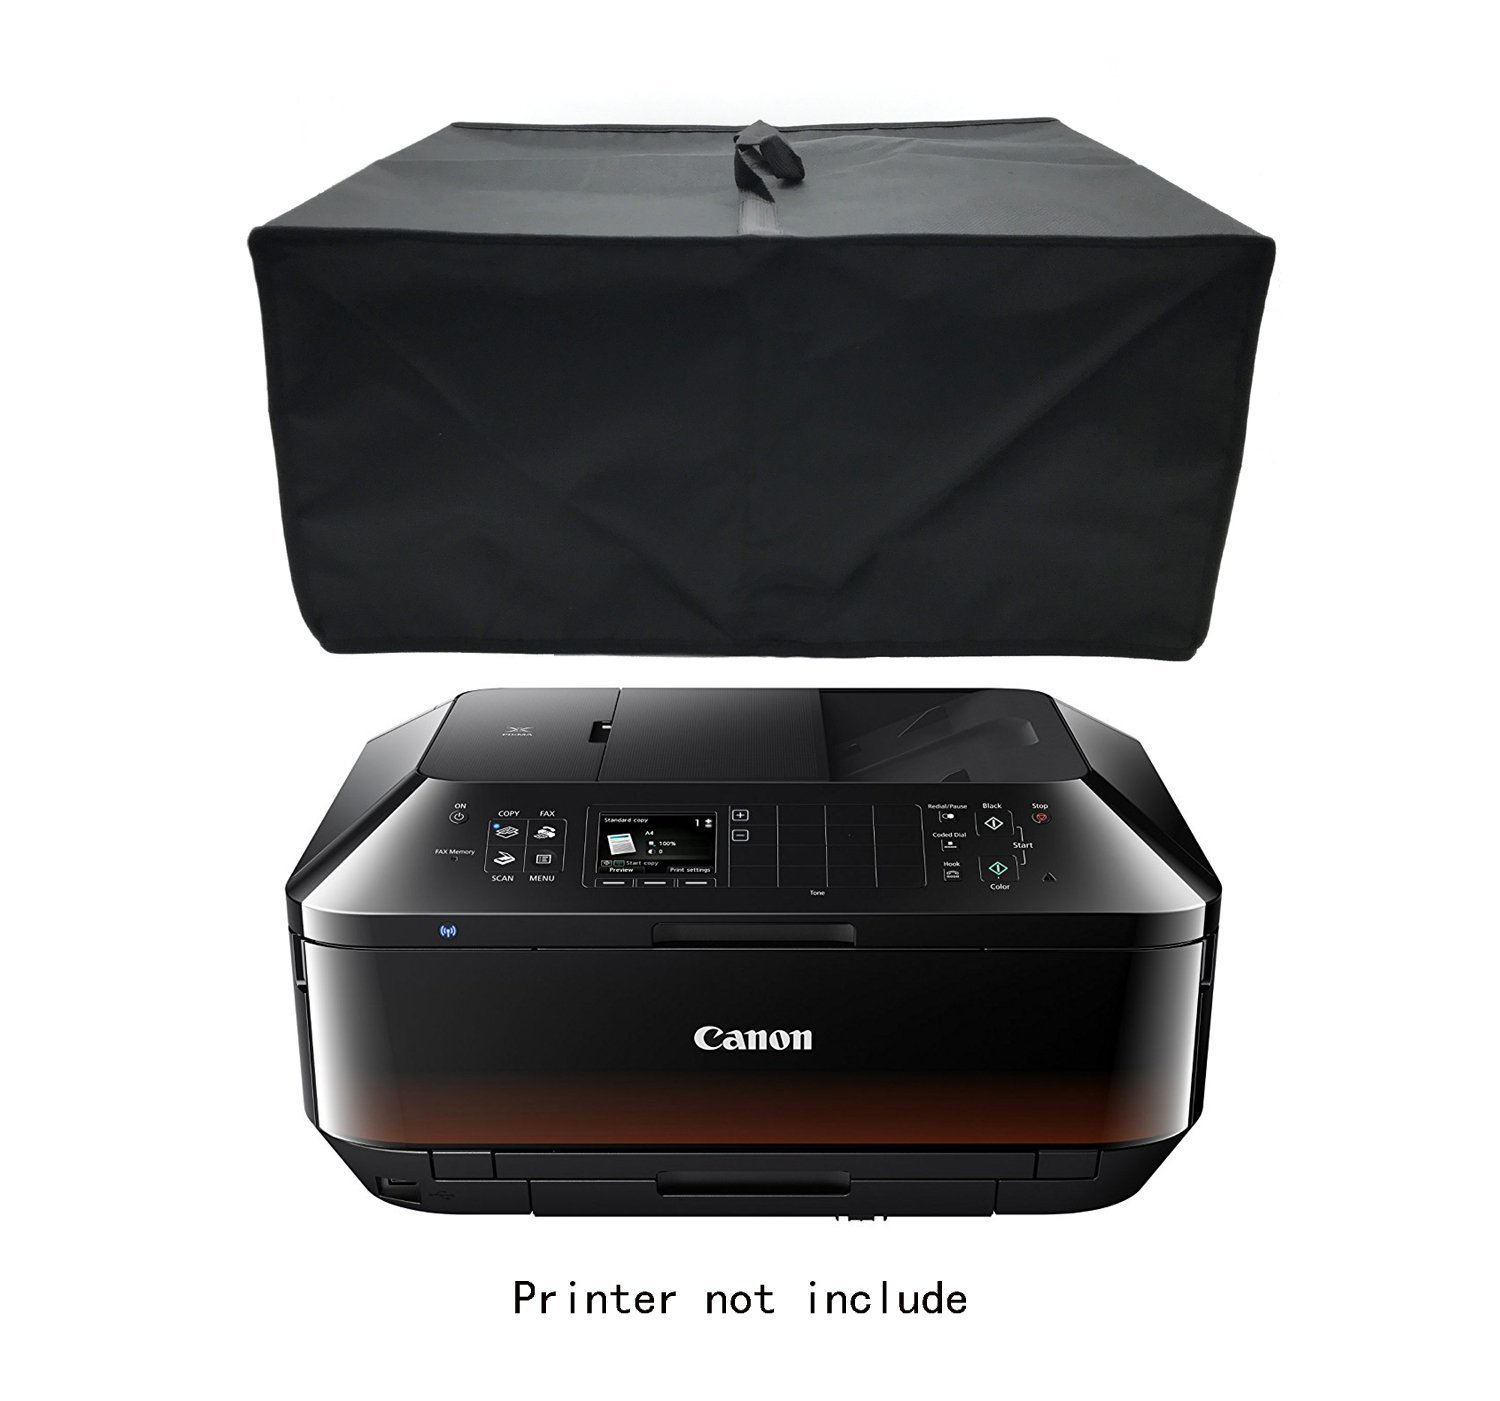 Y8HM Heavy Duty Nylon Printer Dust Cover, Antistatic Water Resistant Fabric Printer Cover Case Seelves for Canon Pixma MX722/MX922/MX925 Printers